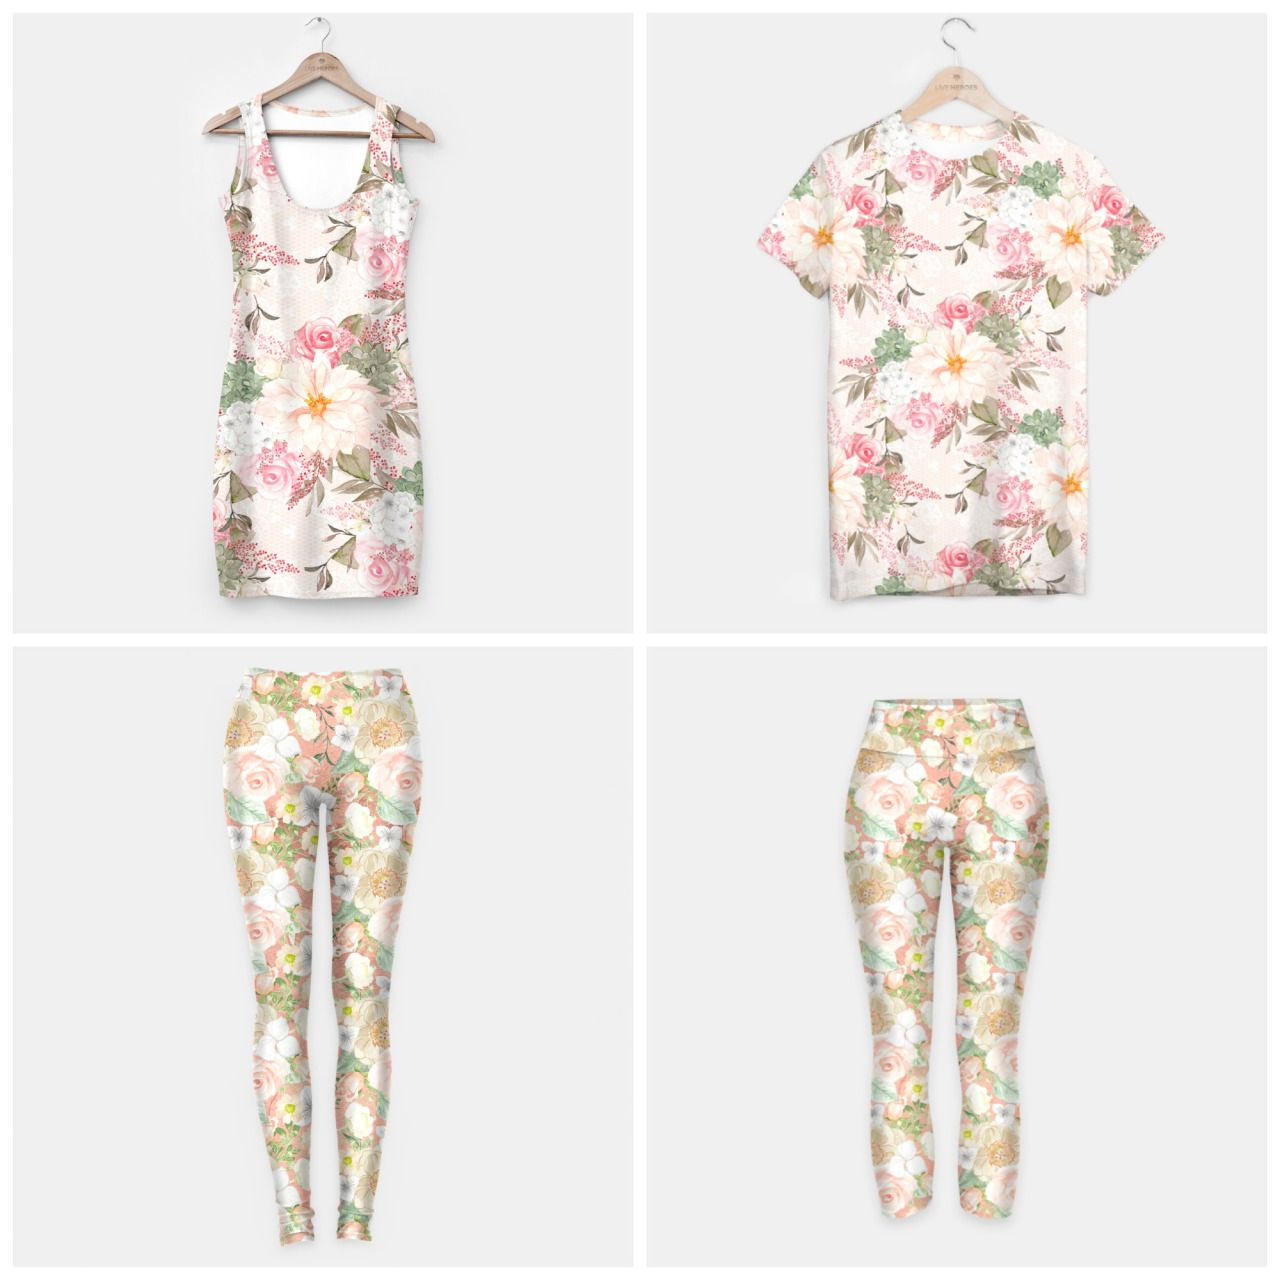 Ends 2/13 Winter #sale #deals 40% off EVERYTHING on my #fashion store. Coming more #flowers #floral designs. #simpledress #tshirt #leggings #yogapants #menswear #womenswear #clothing  Check more designs at bit.ly/fashionpatterns - Check all #sales #couponsat bit.ly/AllSalesCoupons